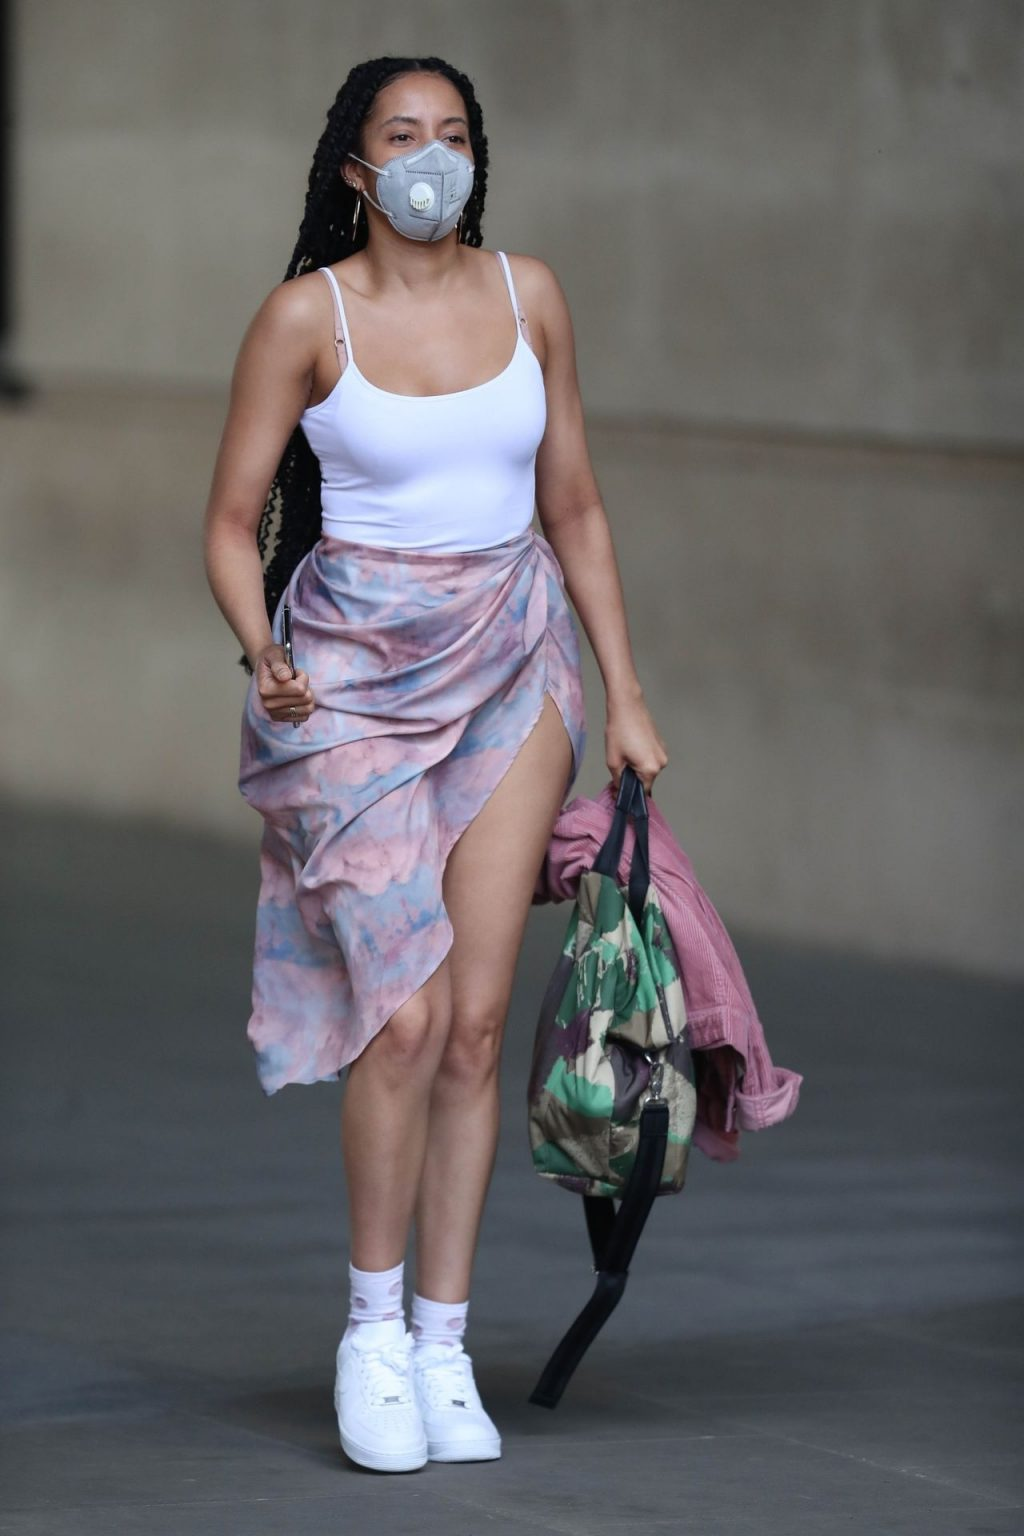 Yasmin Evan Was Pictured While Leaving the BBC Broadcasting House (17 Photos)